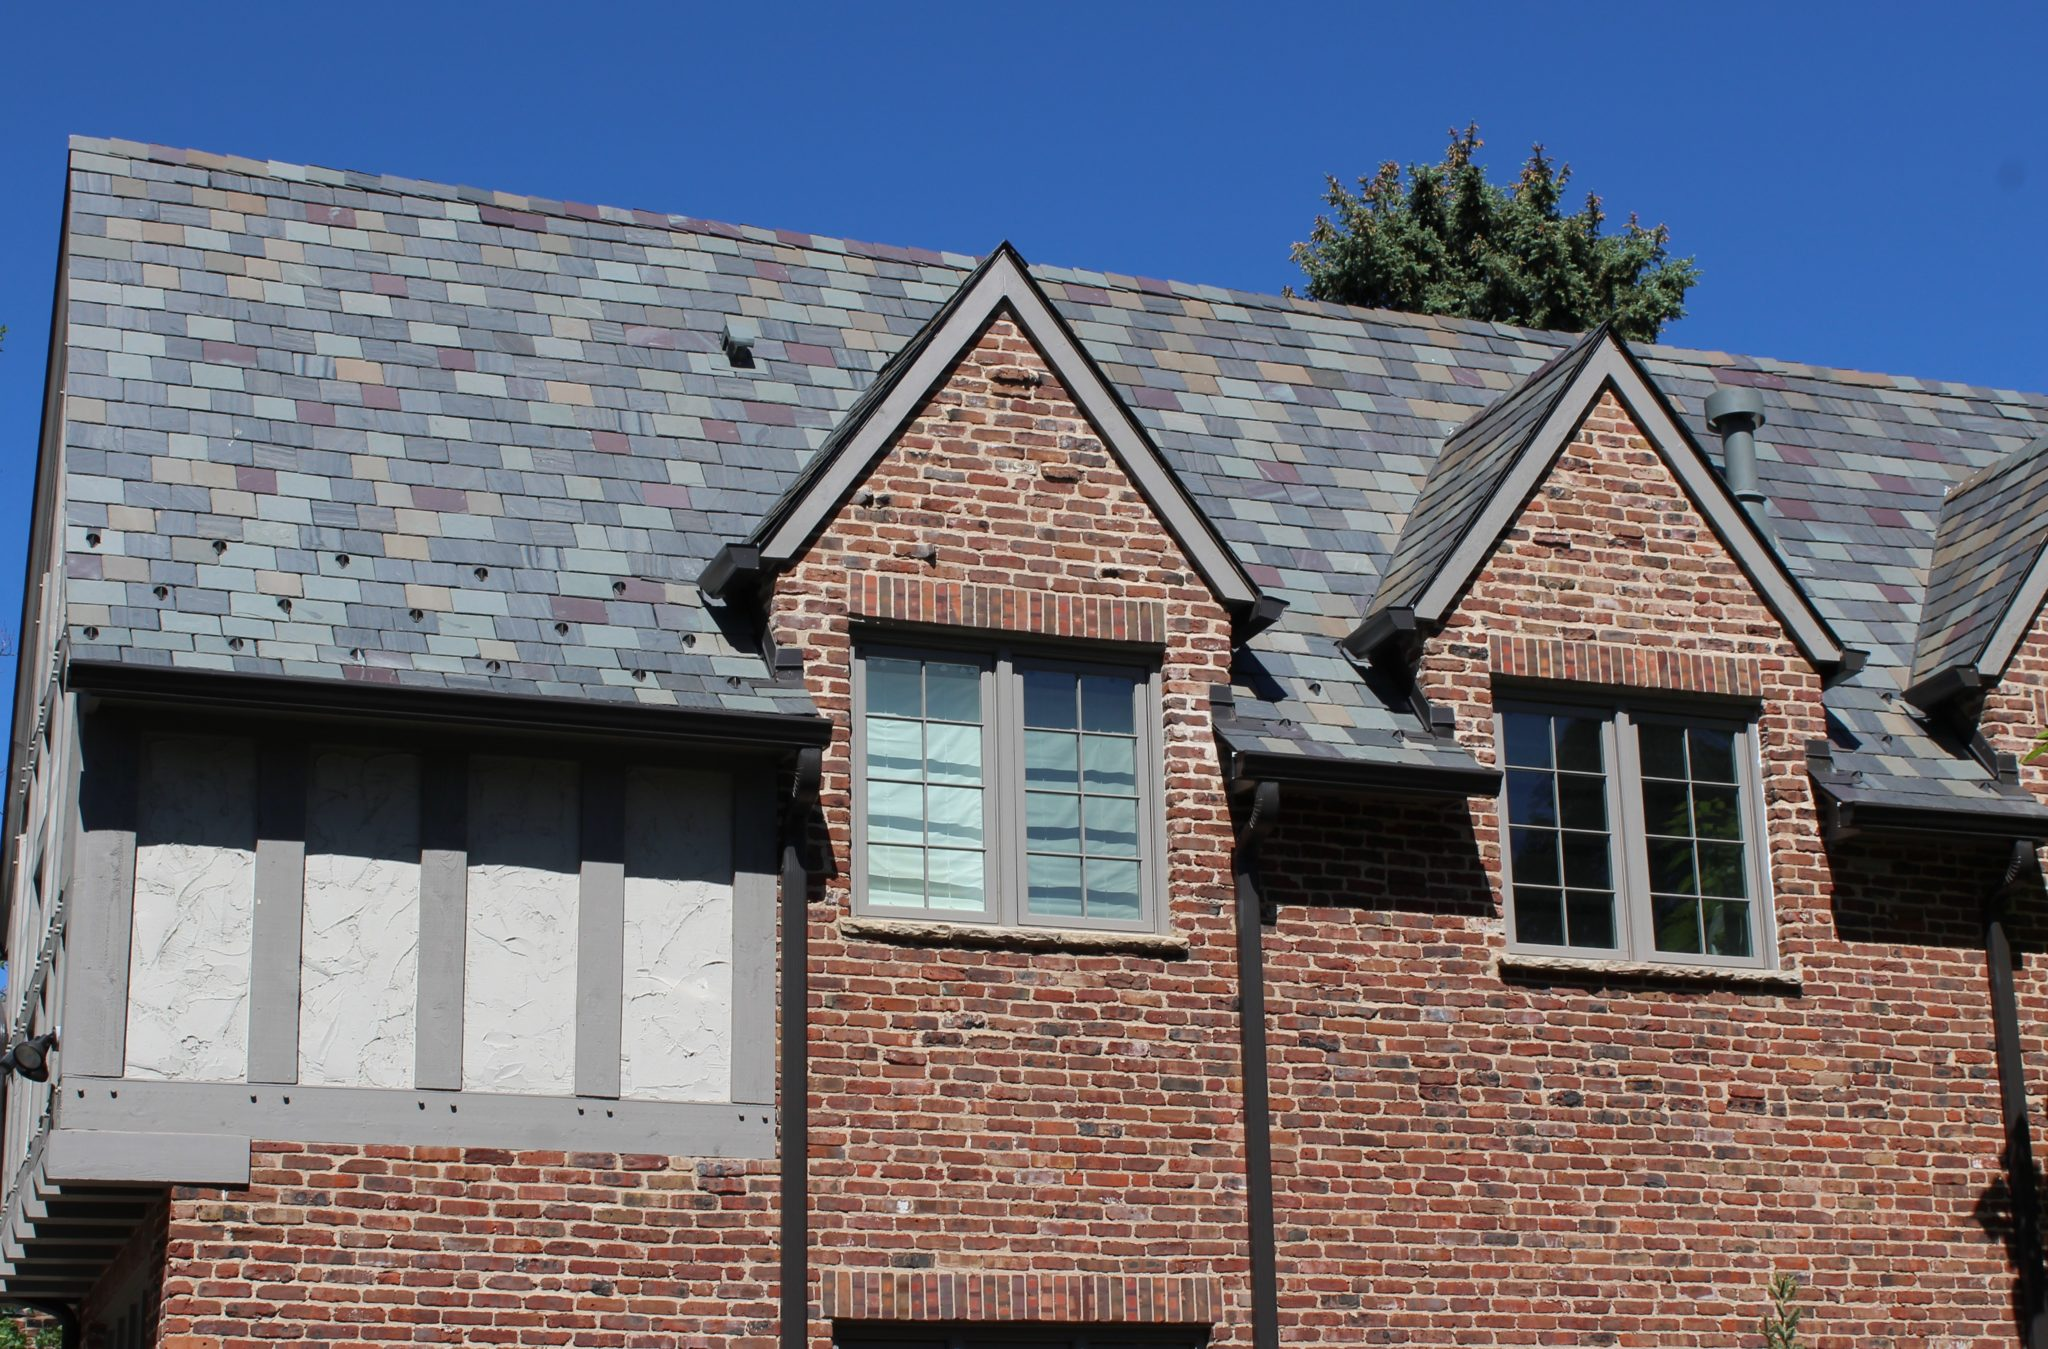 SlateTec - Lightweight Slate Roof - Genuine Slate